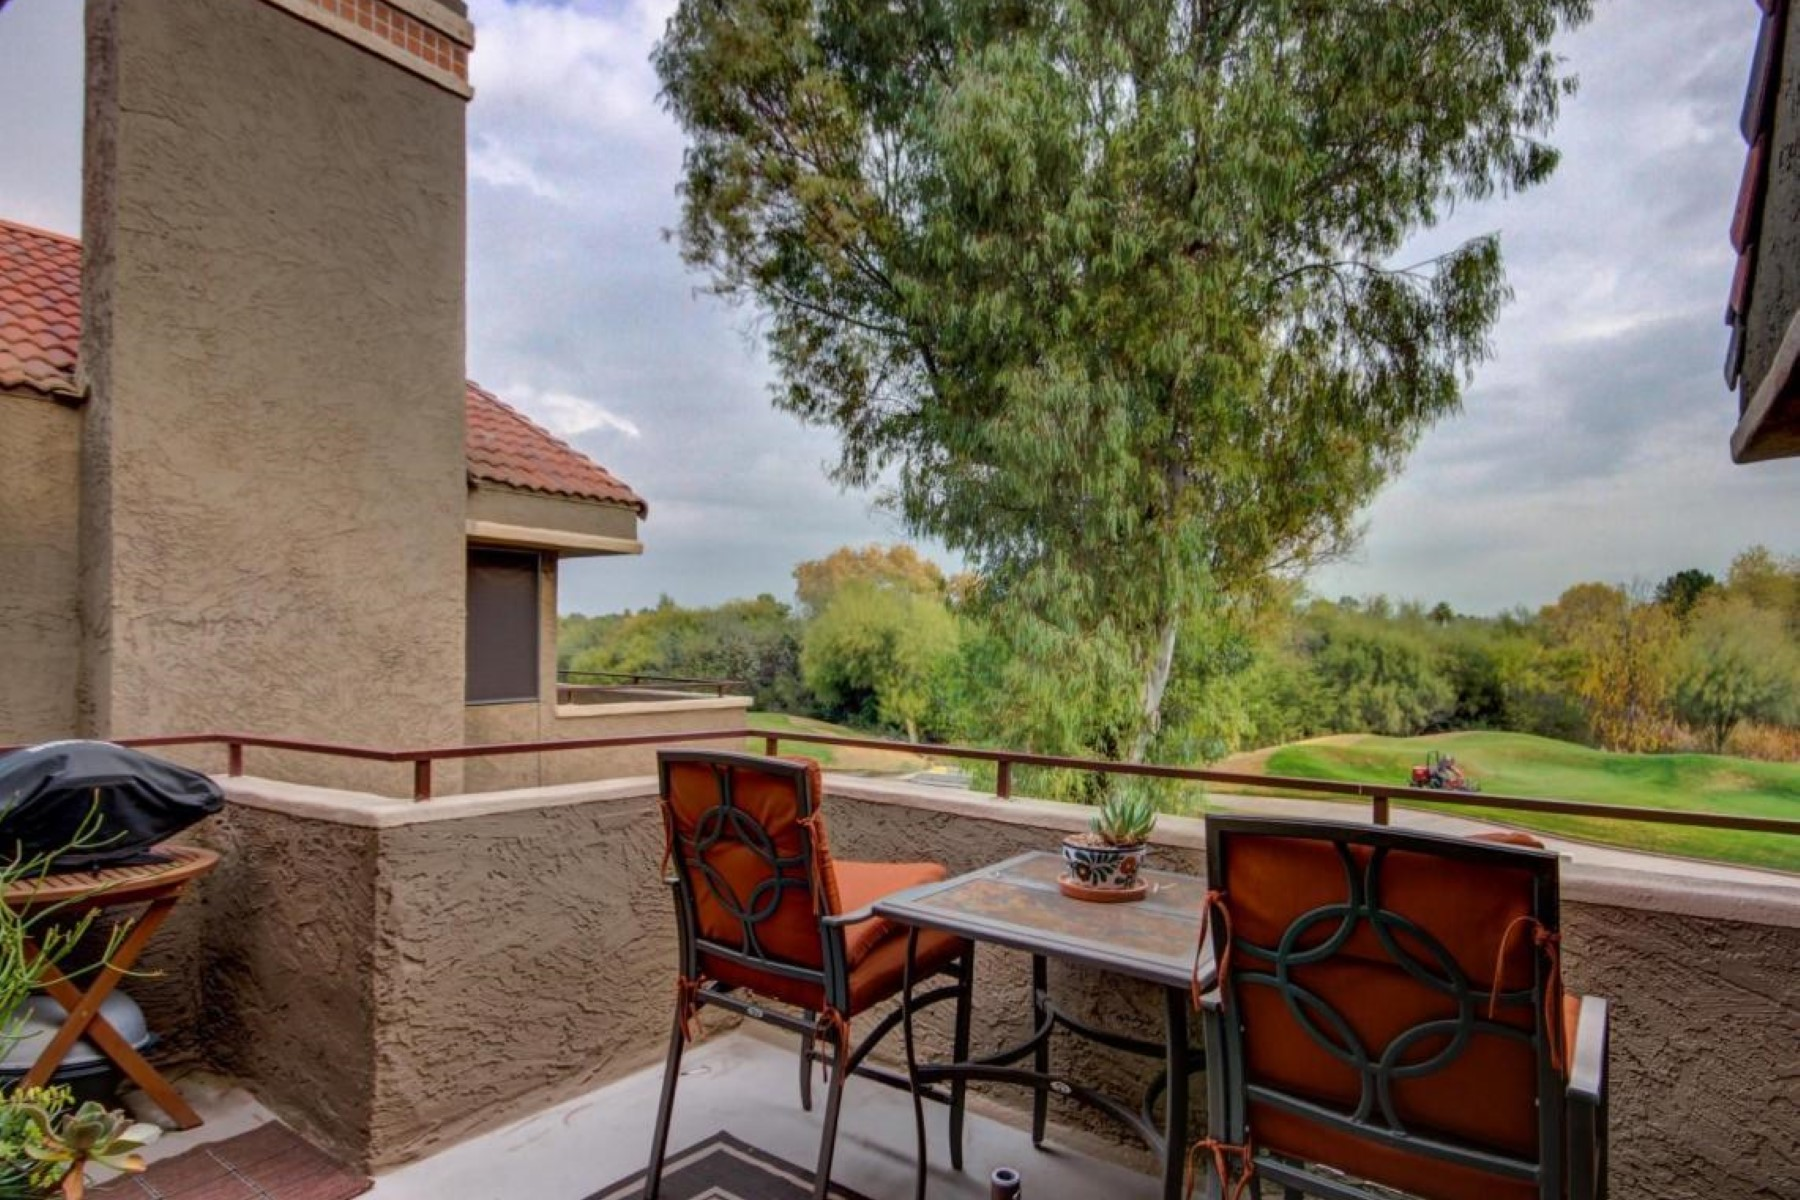 rentals property at Beautifully decorated and fully furnished golf course condo